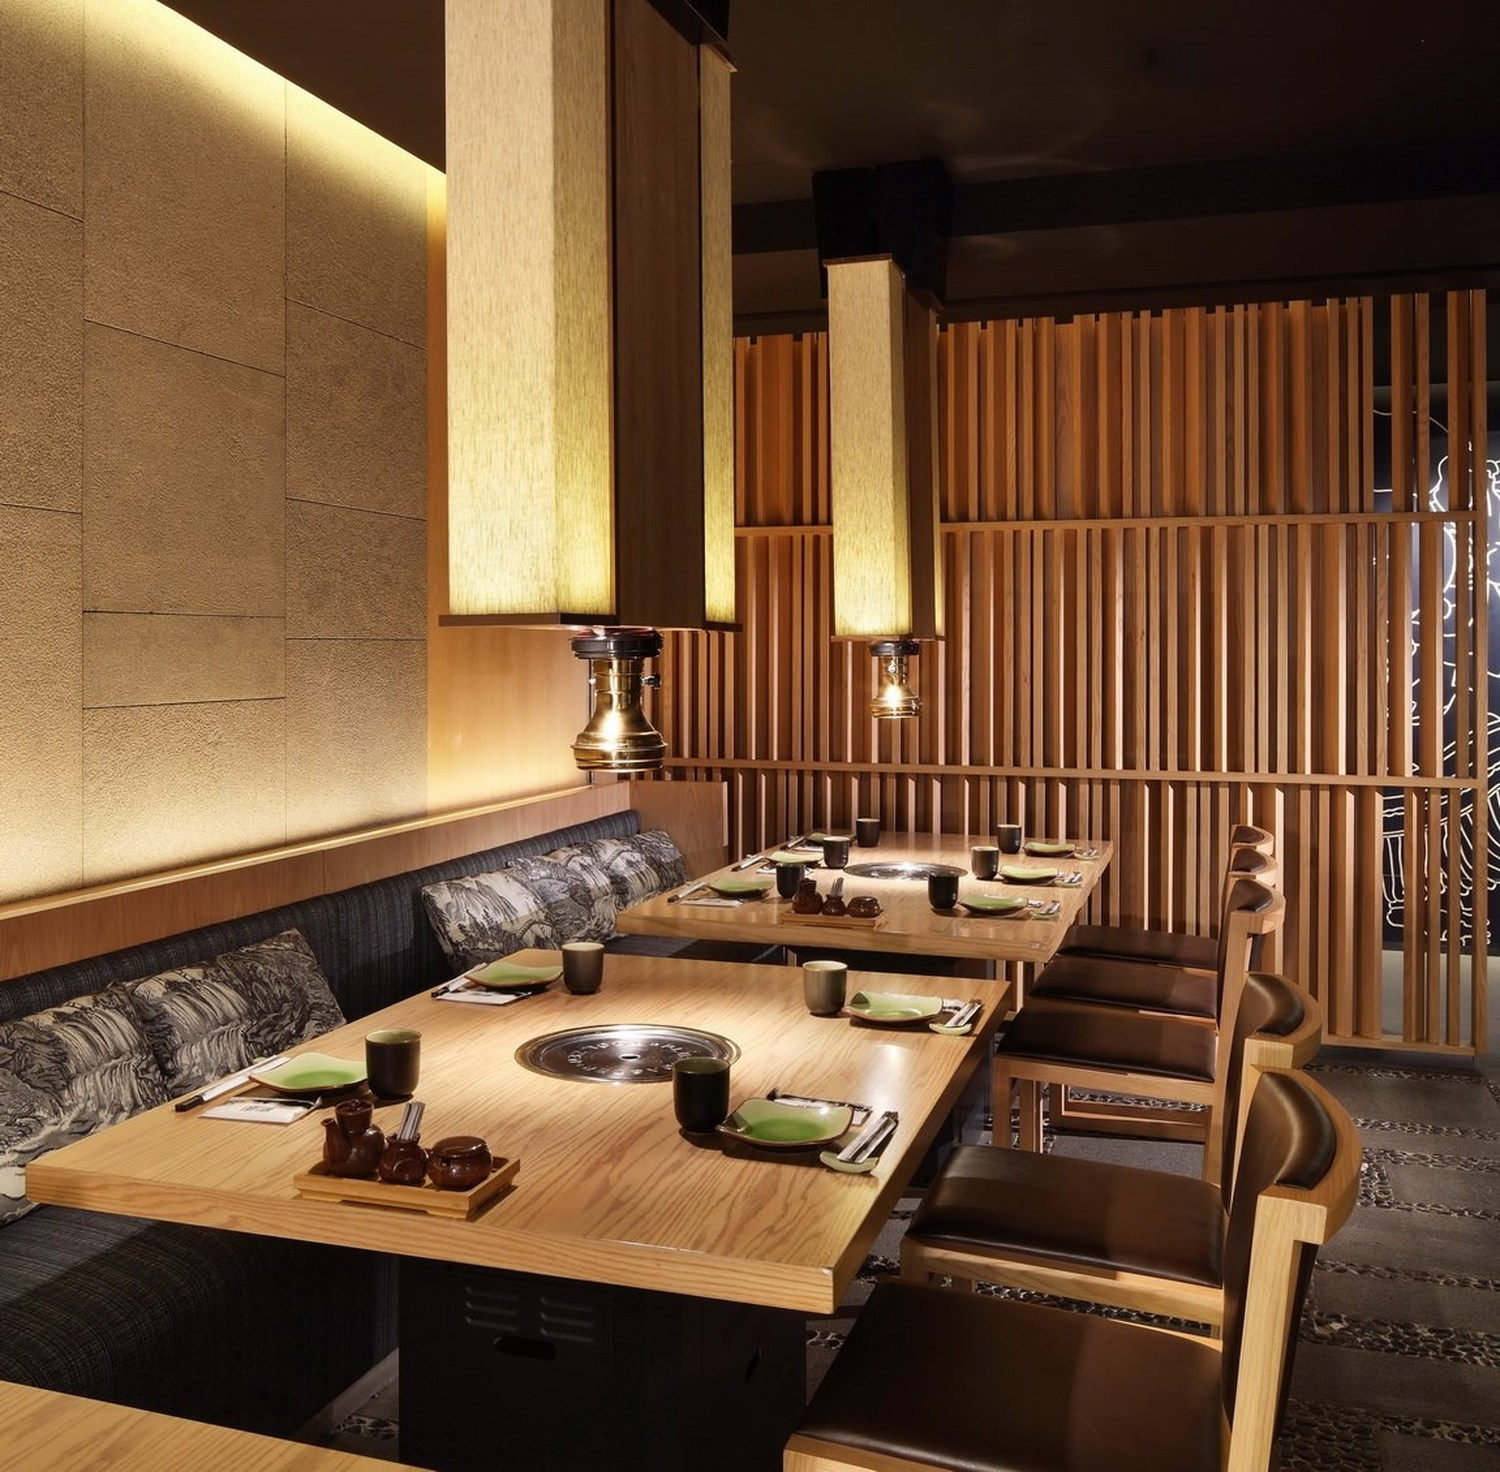 Matsumoto restaurant by golucci international design for Restaurant design